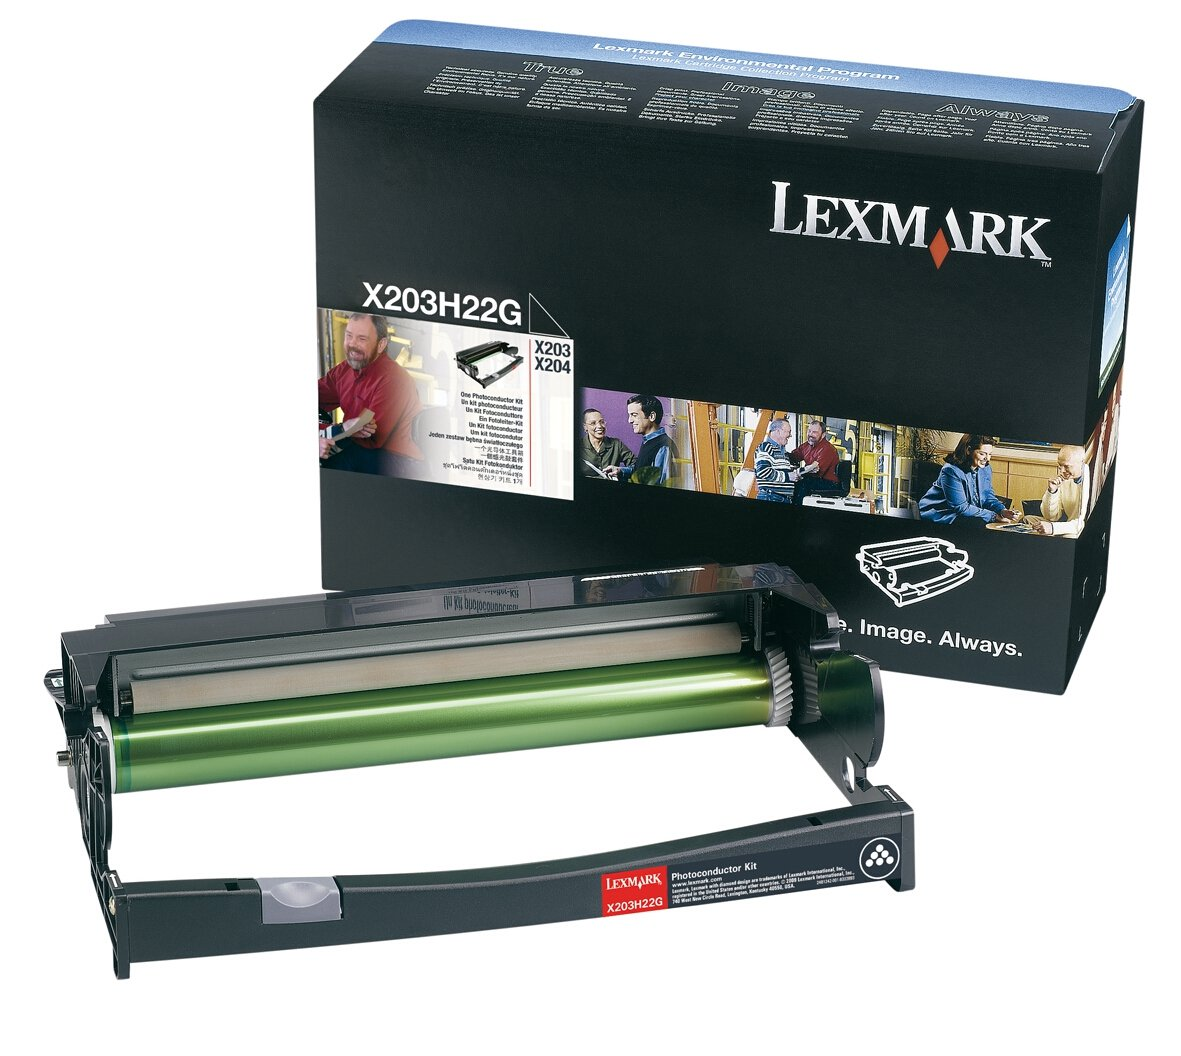 Lexmark X203H22G X204 Photoconductor Kit